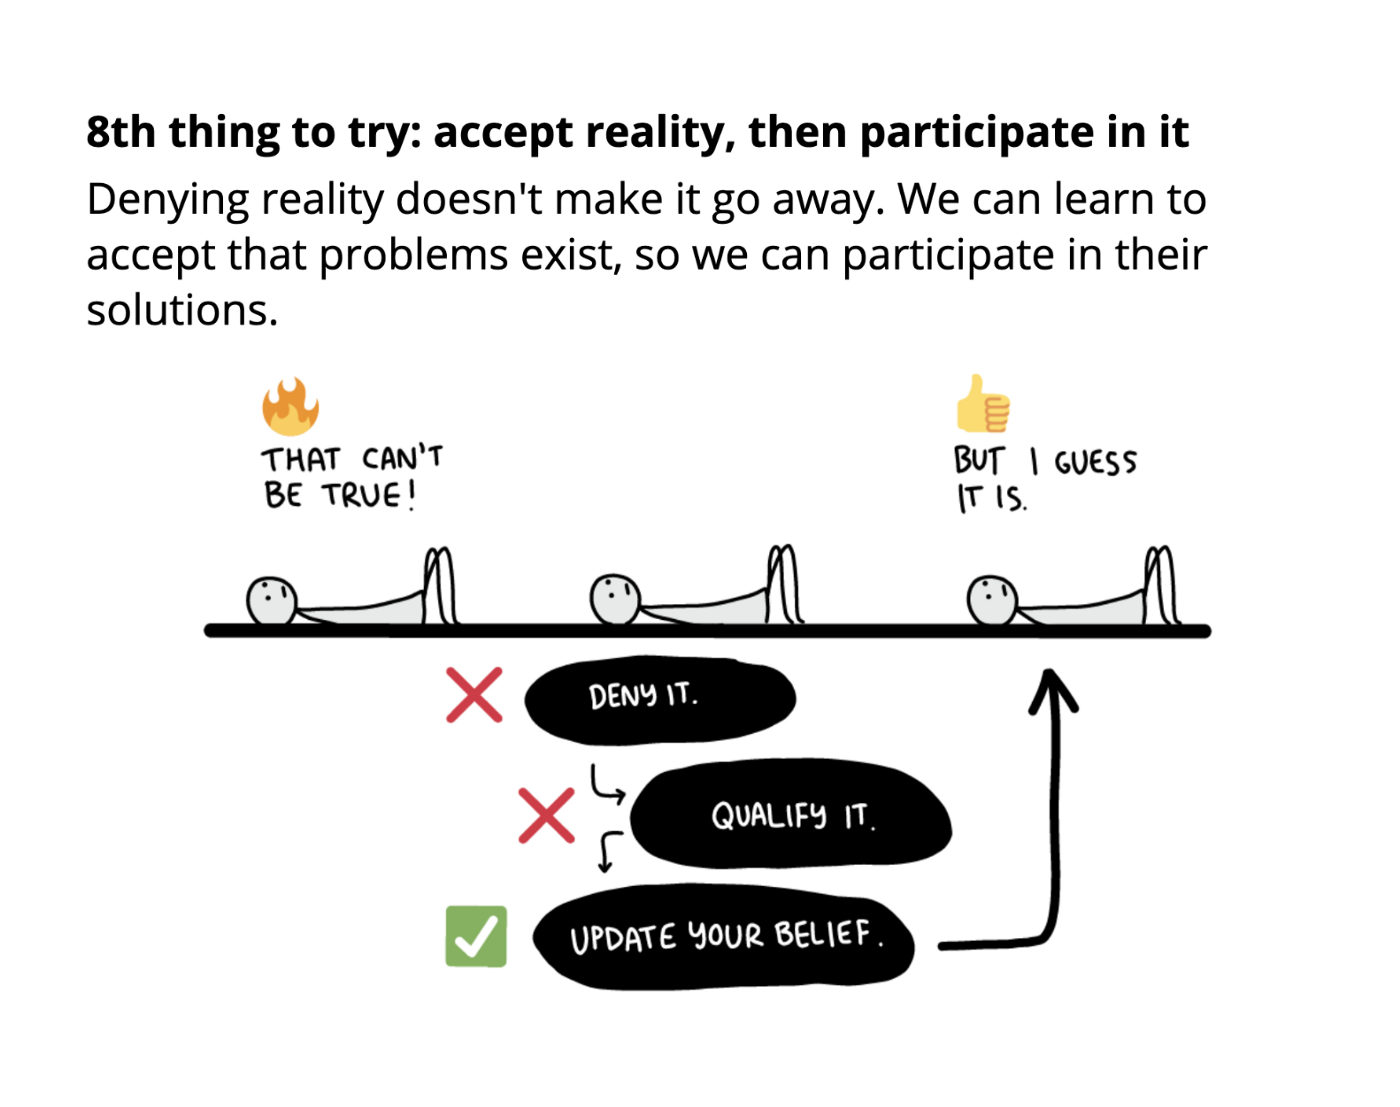 8th thing to try: accept reality, then participate in it